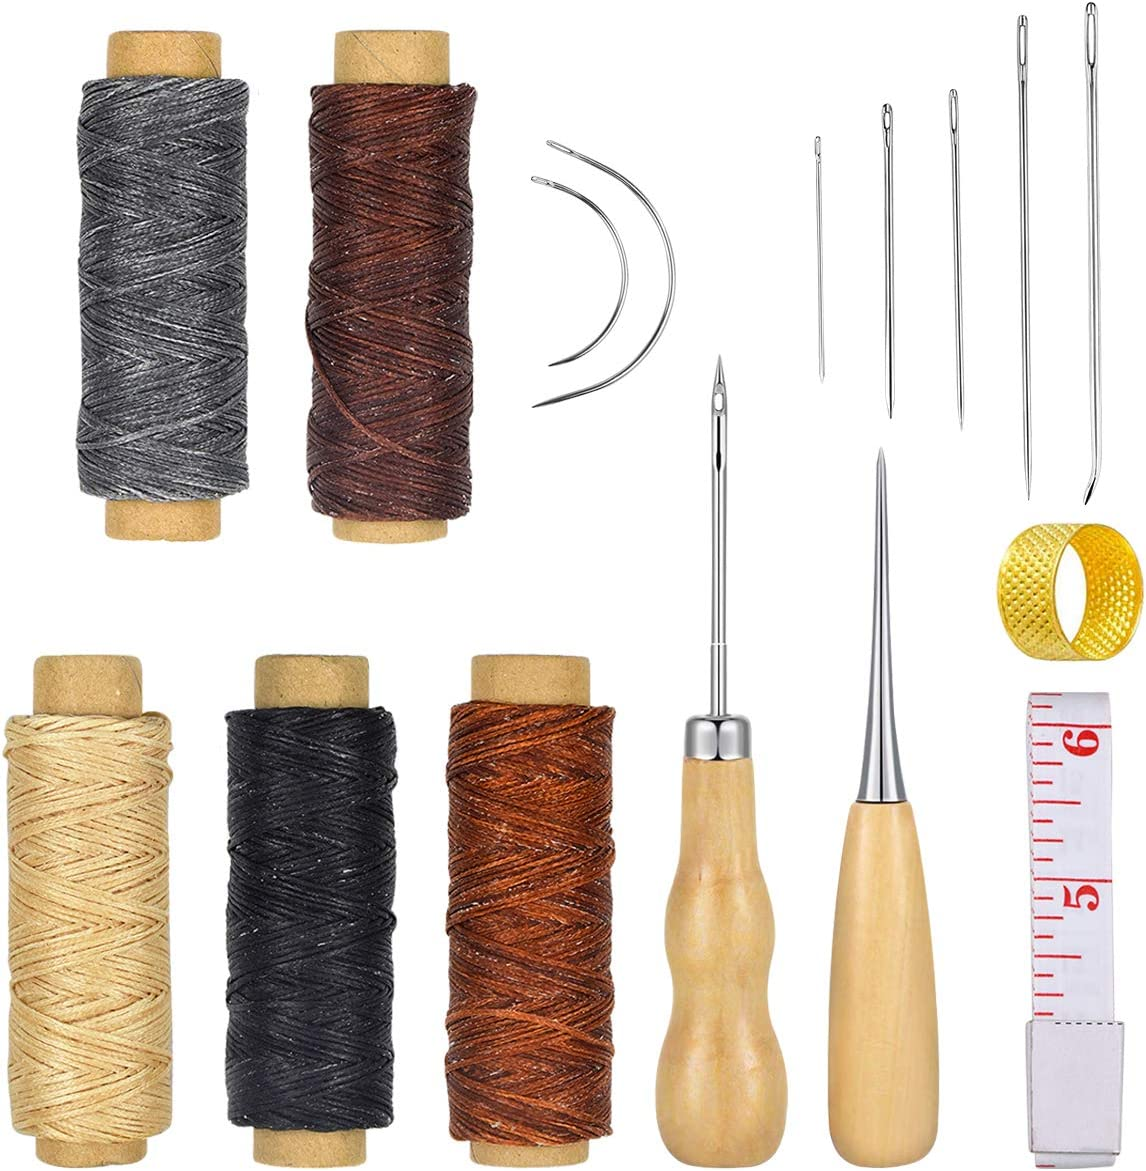 7Pcs Sewing Needles with Leather Waxed Thread Cord Drilling Awl Thimble Kit